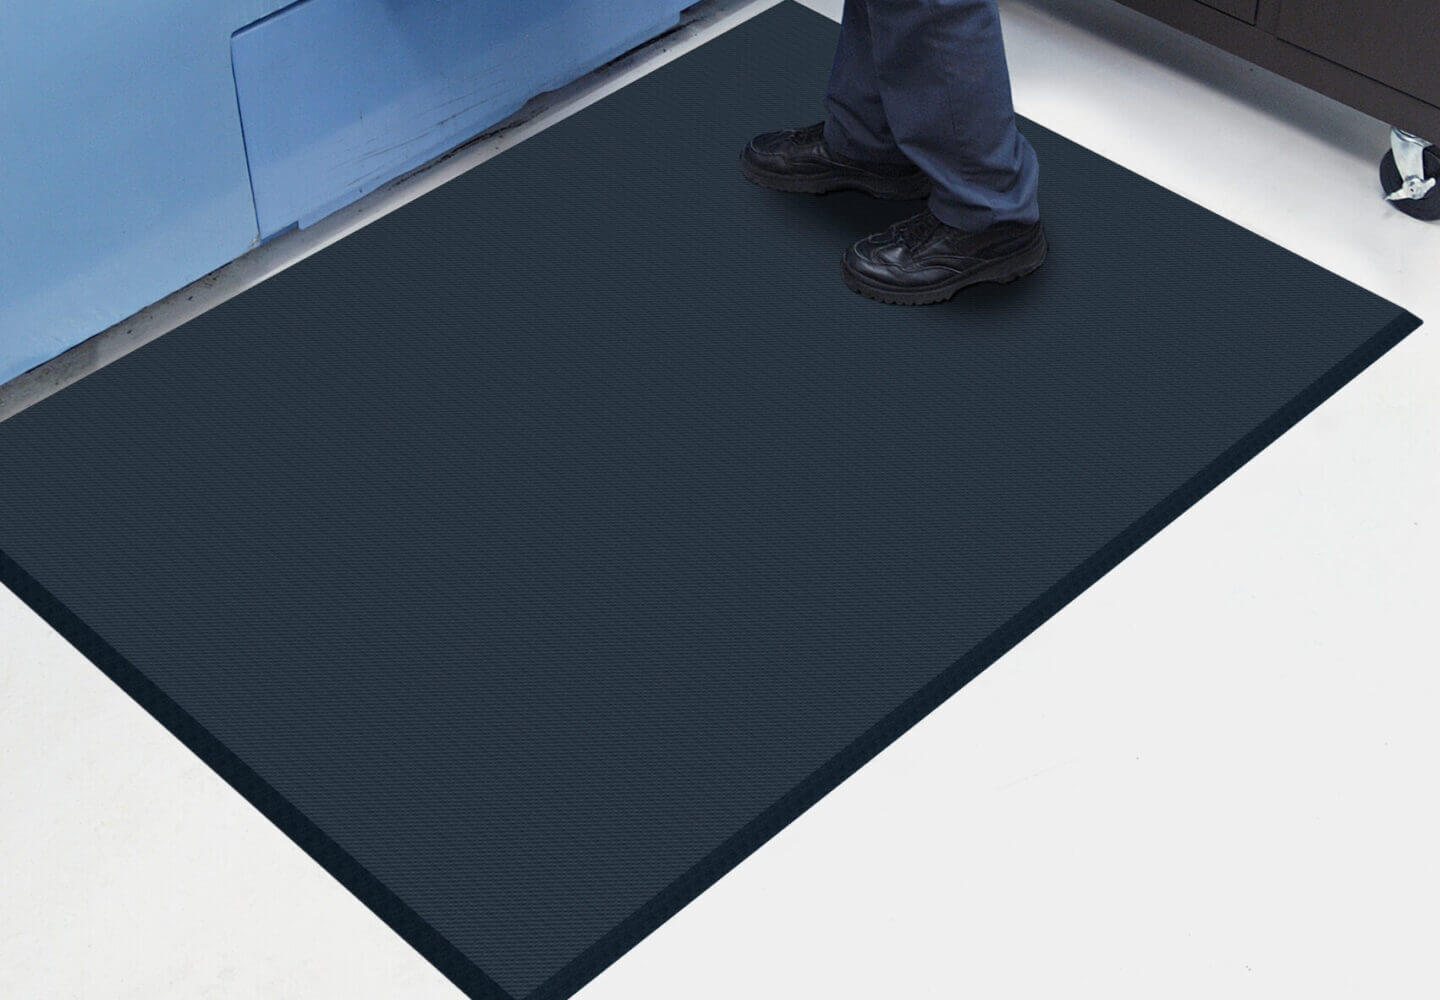 someone standing on an anti-fatique mat